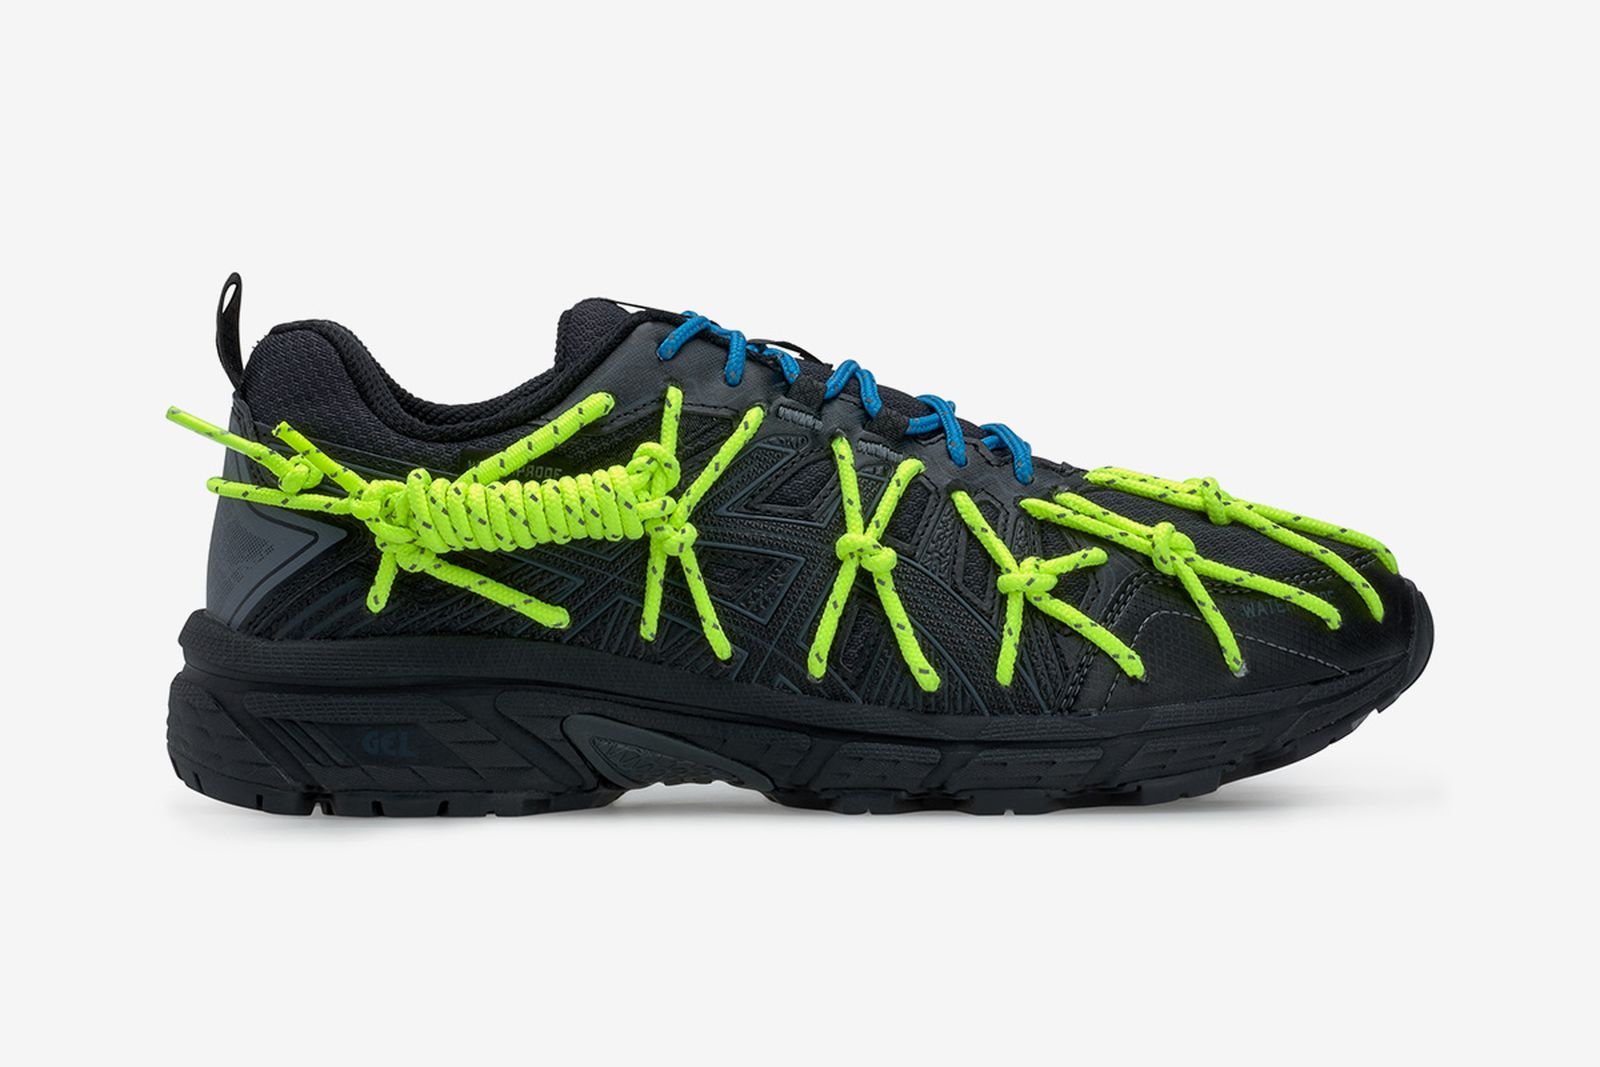 rokh-asics-gel-kayano-5-360-release-date-price-05